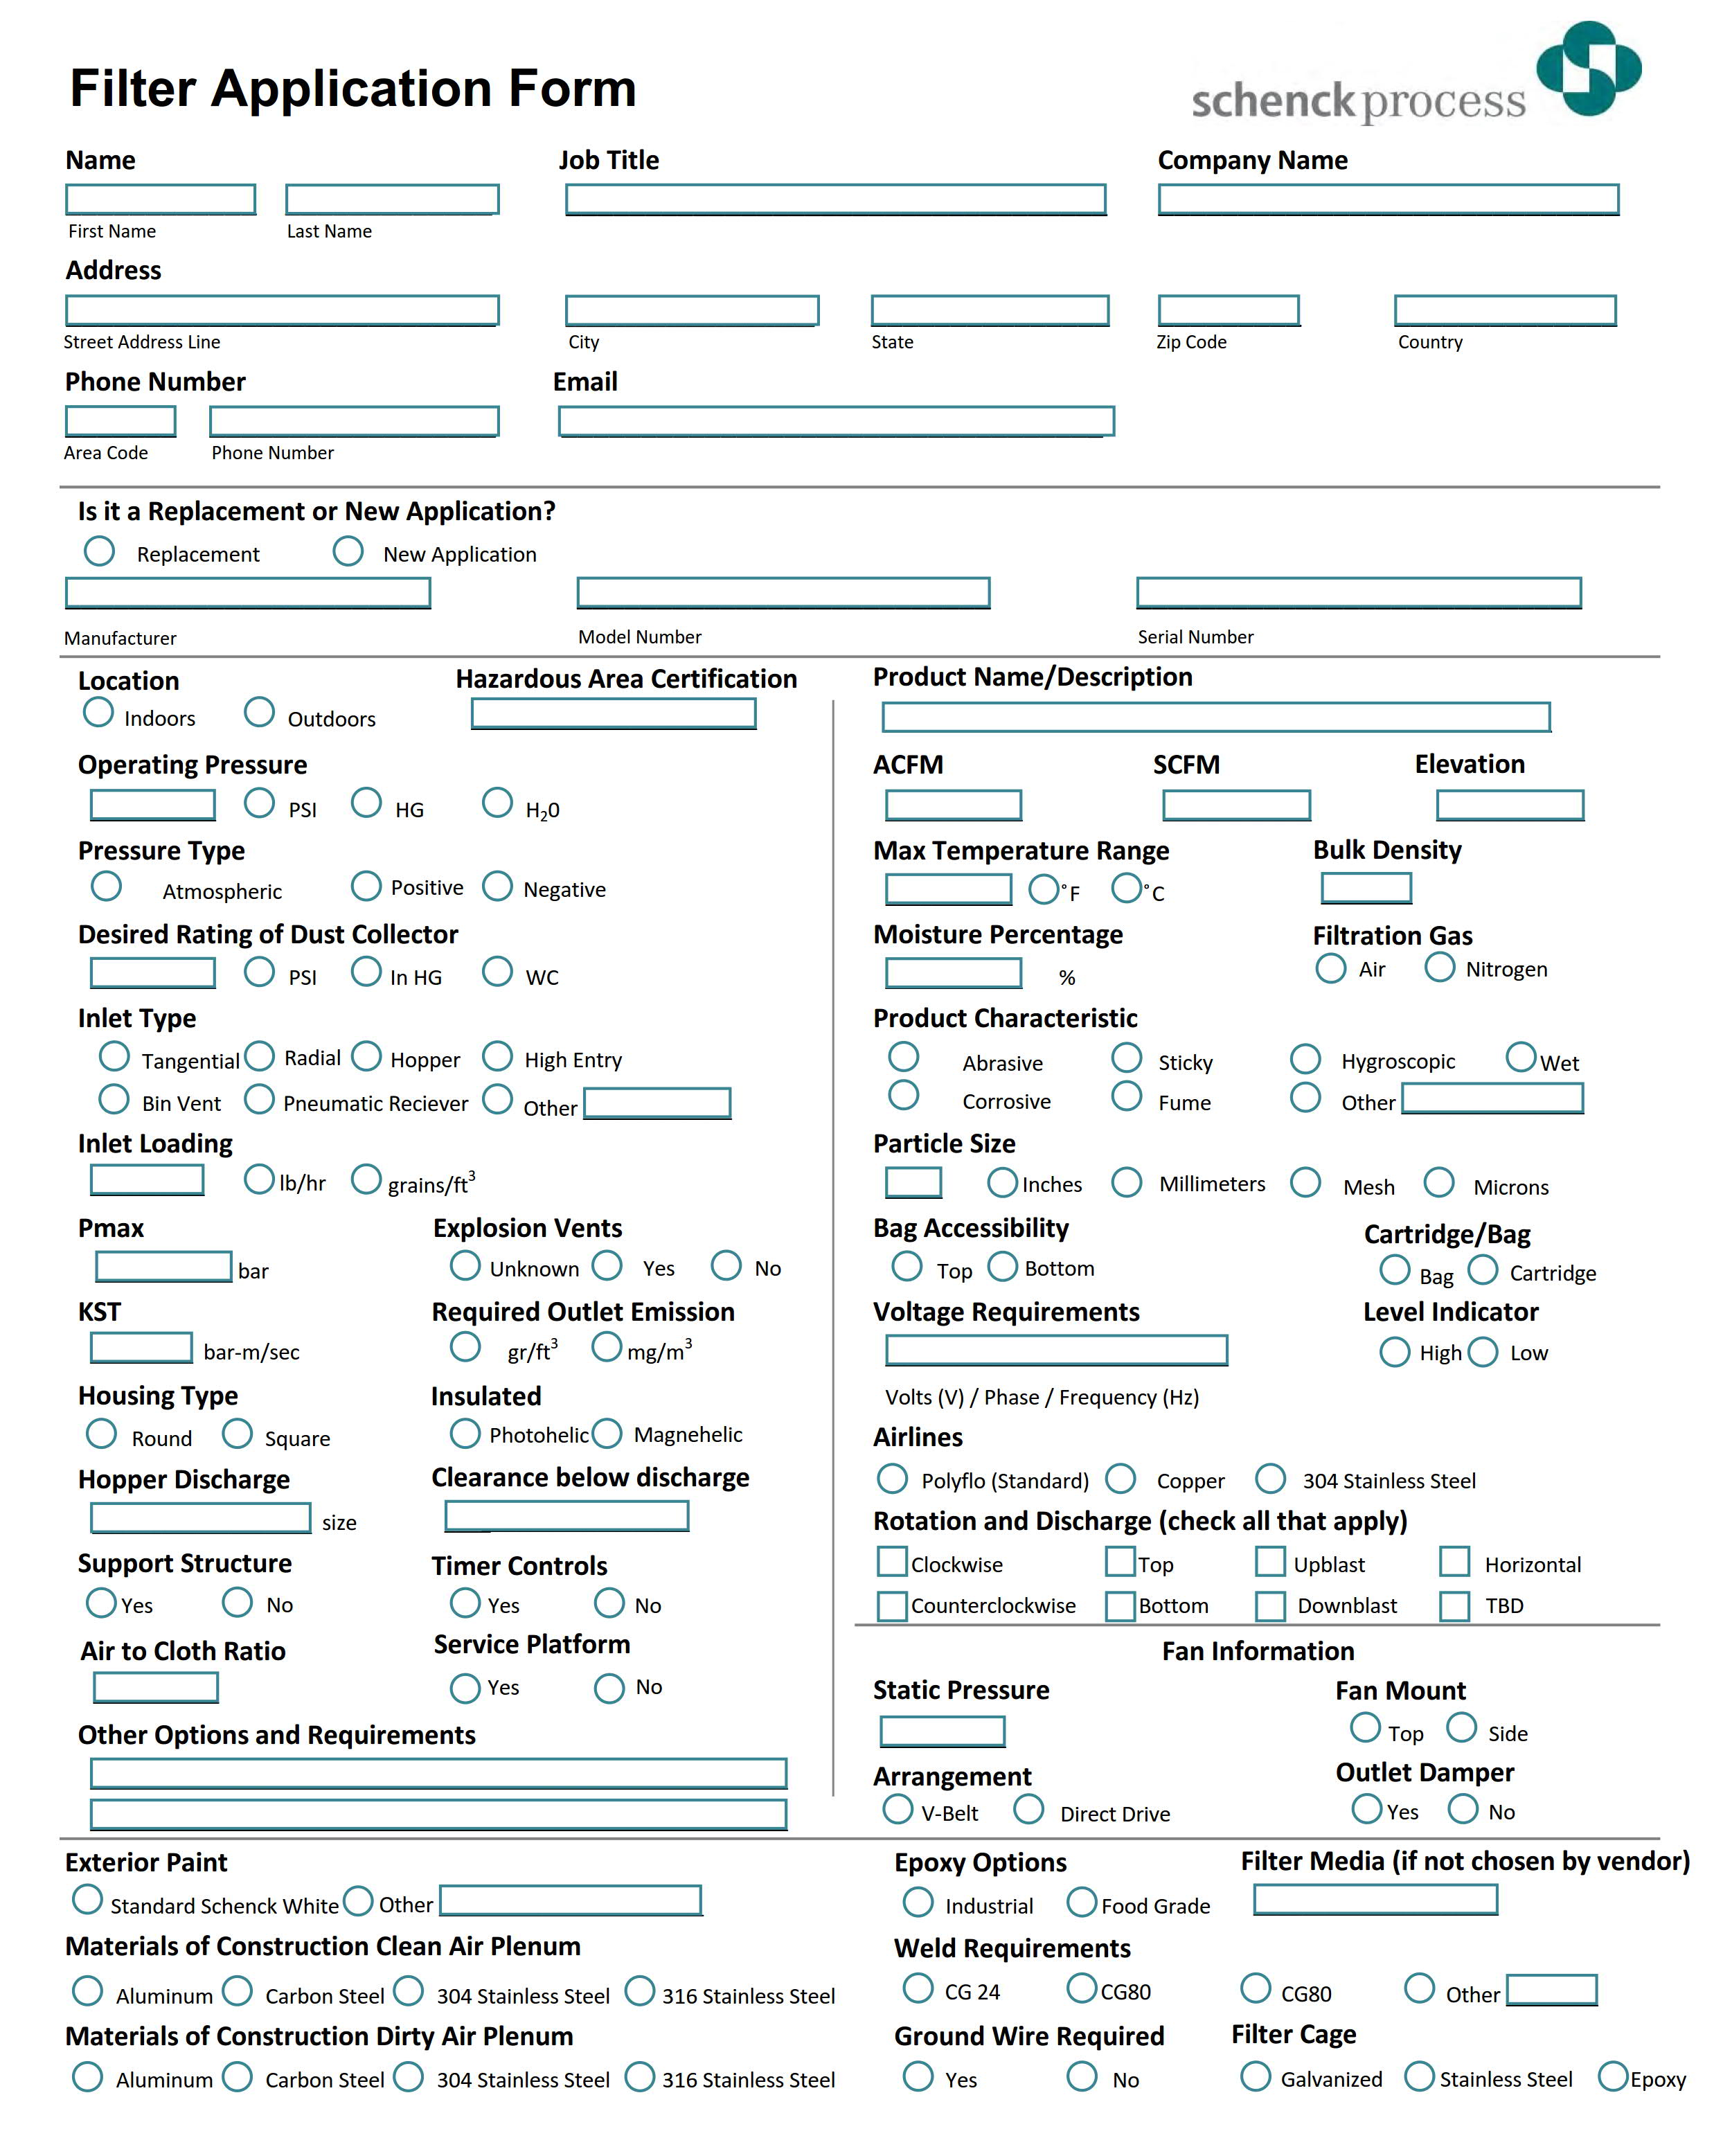 Filter Application Form